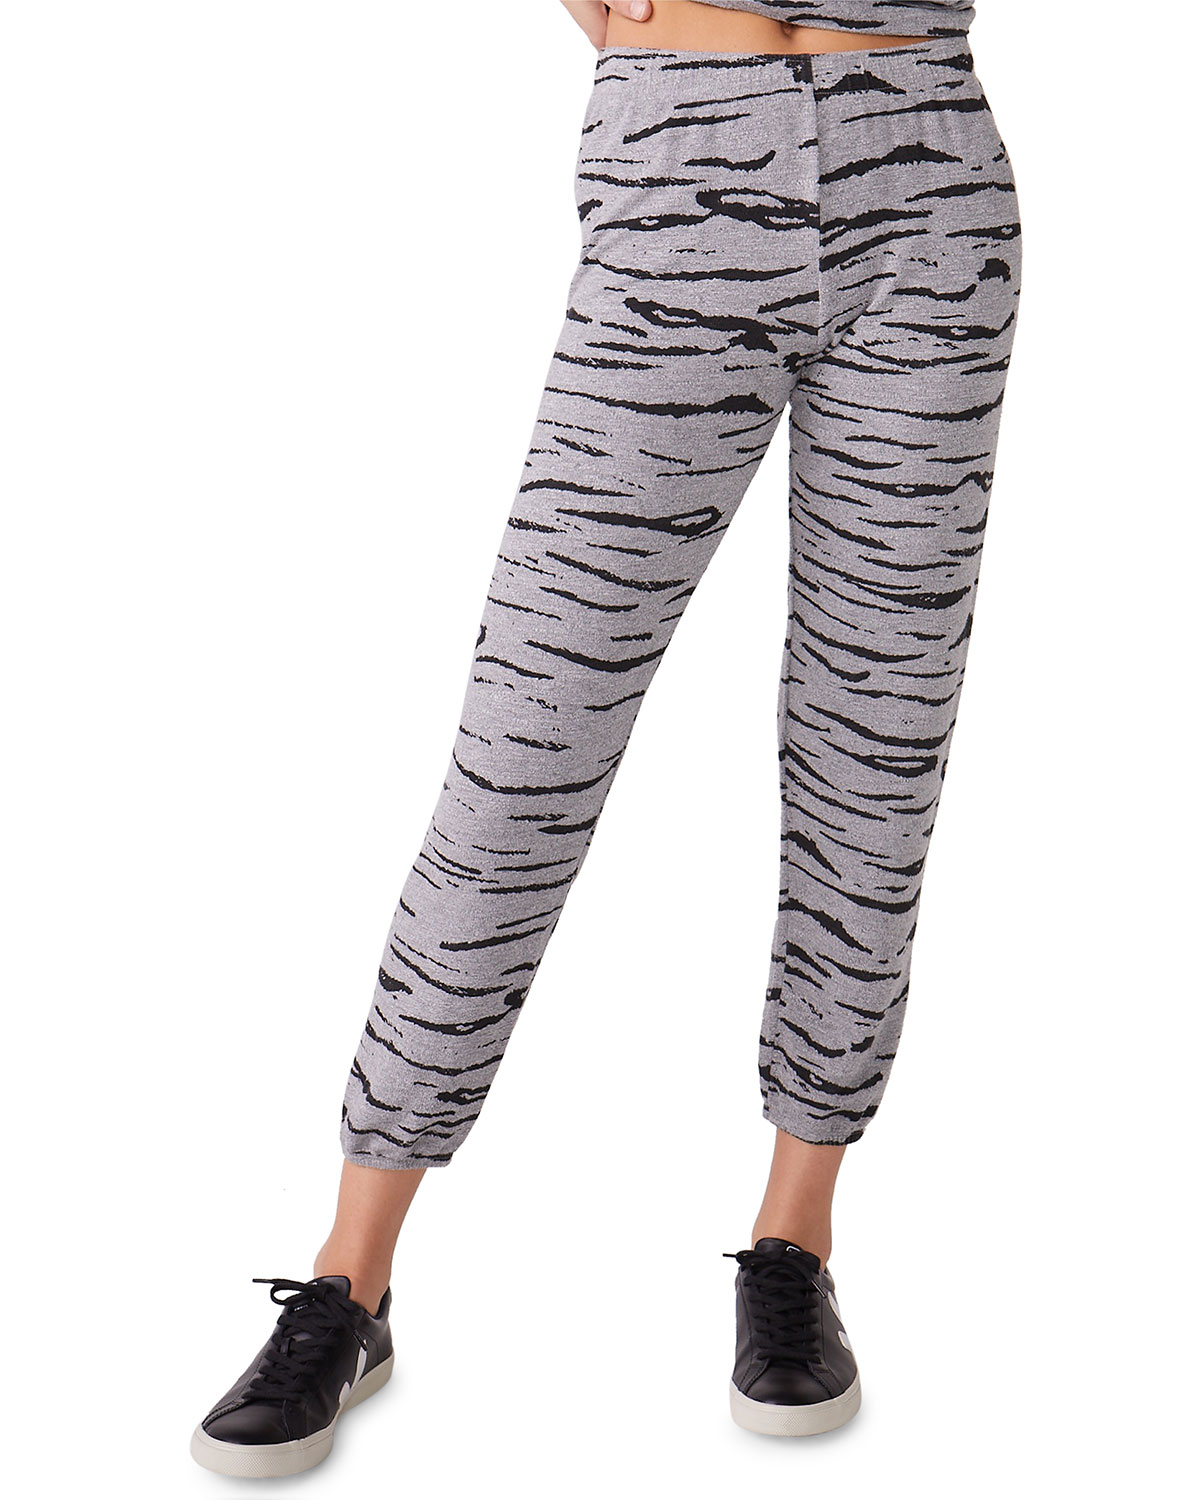 Monrow Pants HEATHERED TIGER-PRINT SWEATPANTS